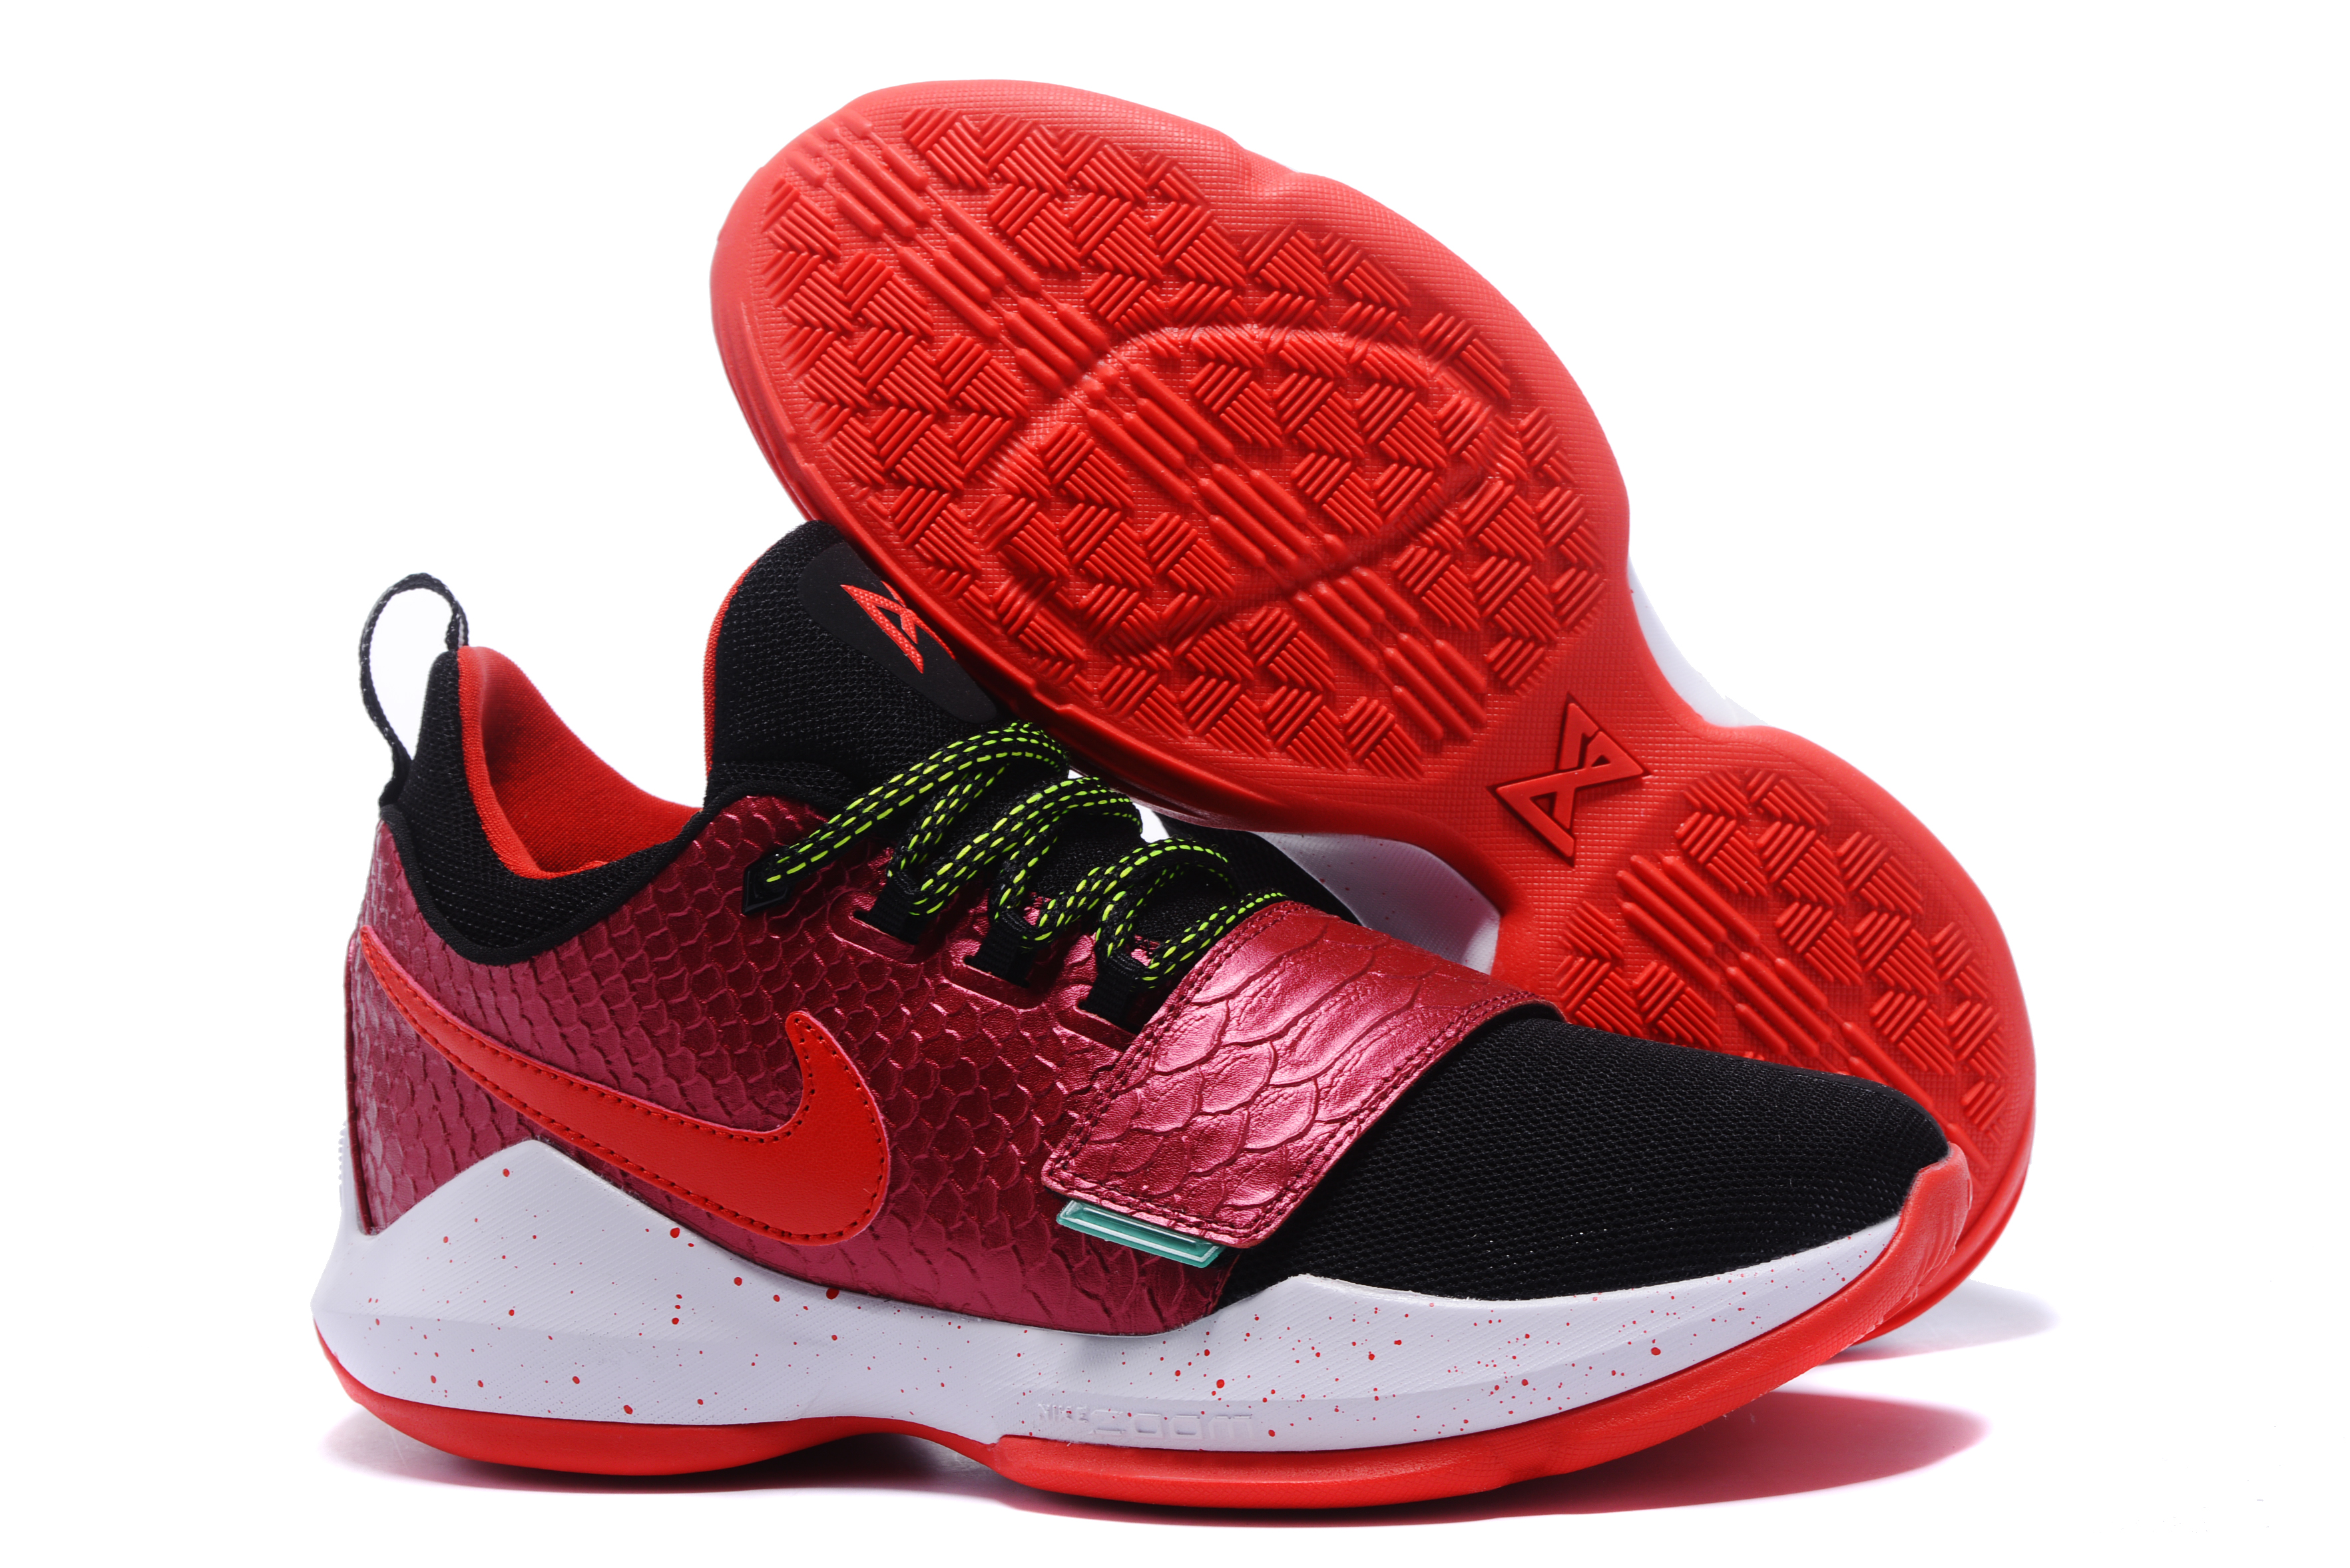 Paul George 1 Black Wine Red Shoes On Sale